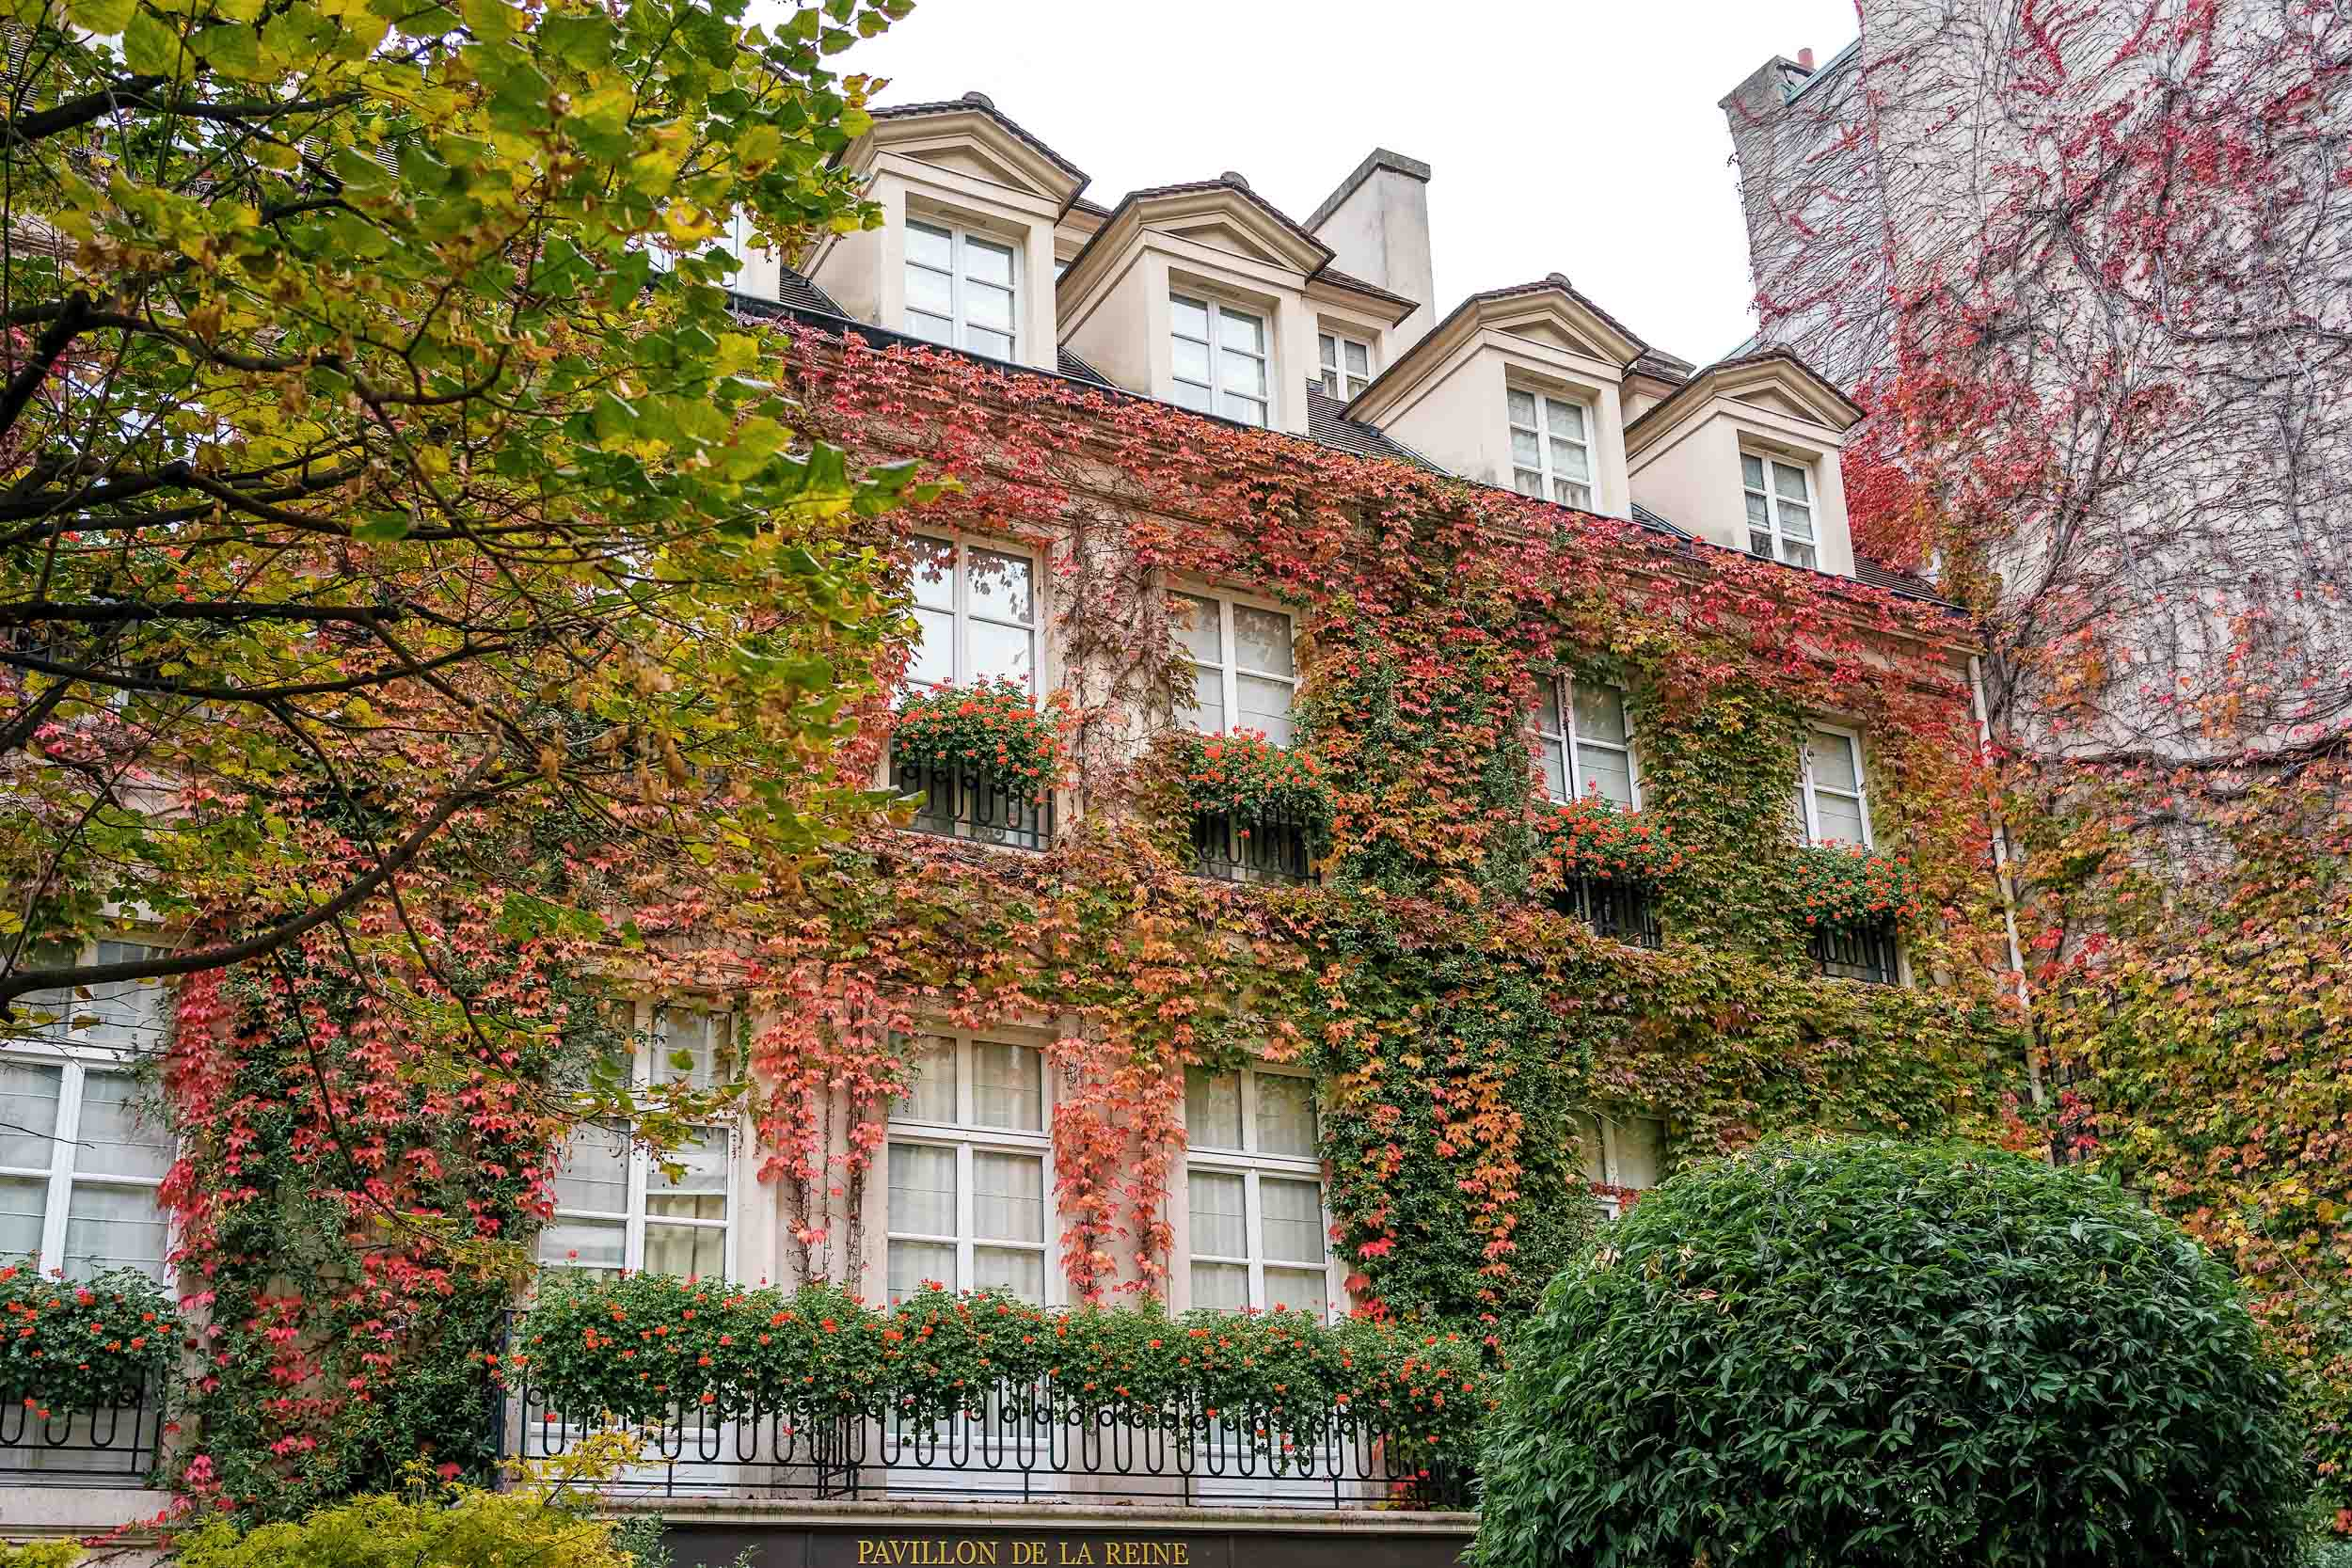 I personally find autumn in Paris to be especially lovely, even in November when it's almost wintertime